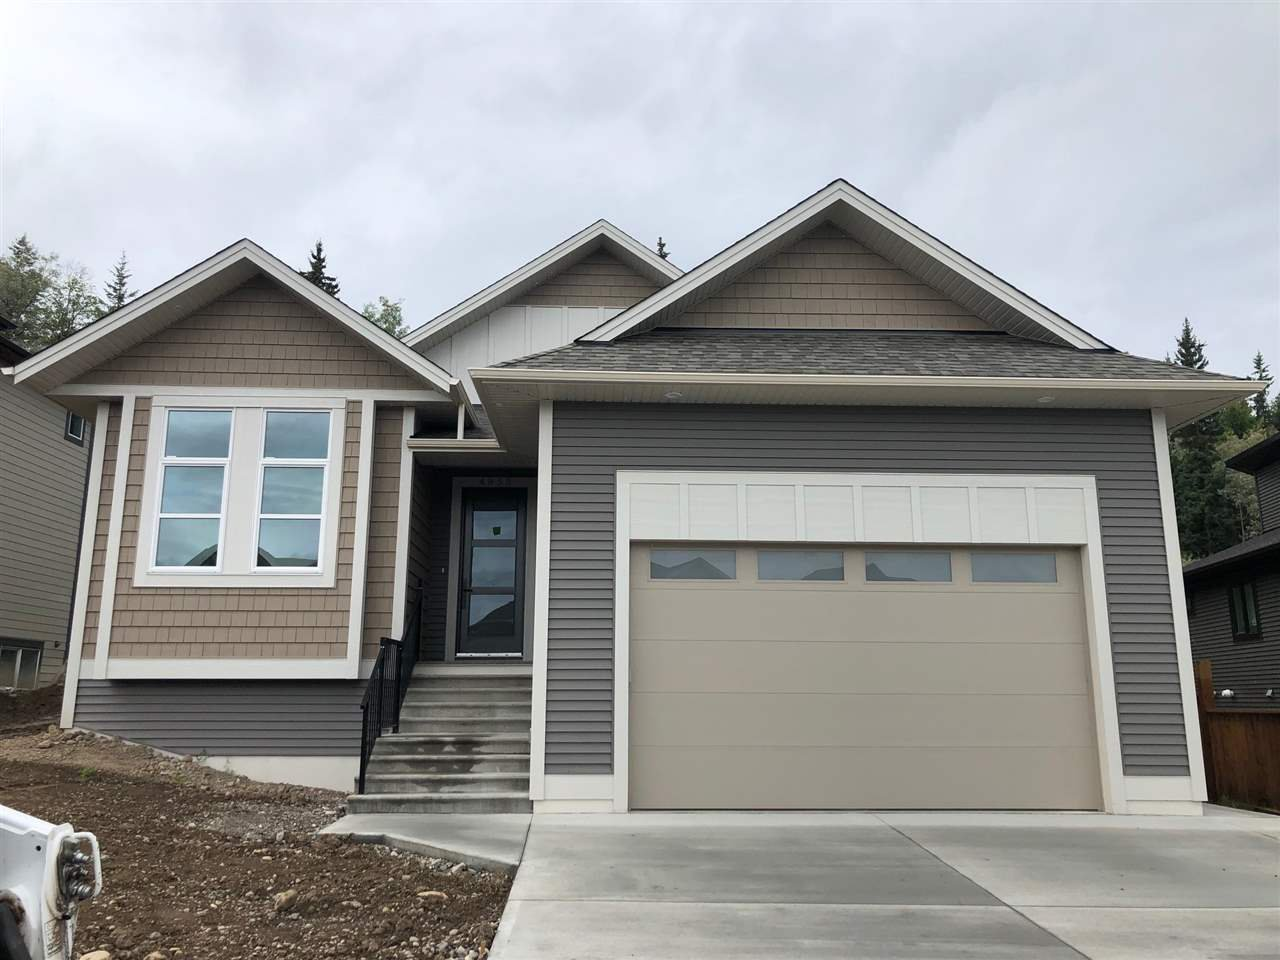 """Main Photo: 4855 PARKSIDE Drive in Prince George: Charella/Starlane House for sale in """"PARKVIEW"""" (PG City South (Zone 74))  : MLS®# R2428009"""